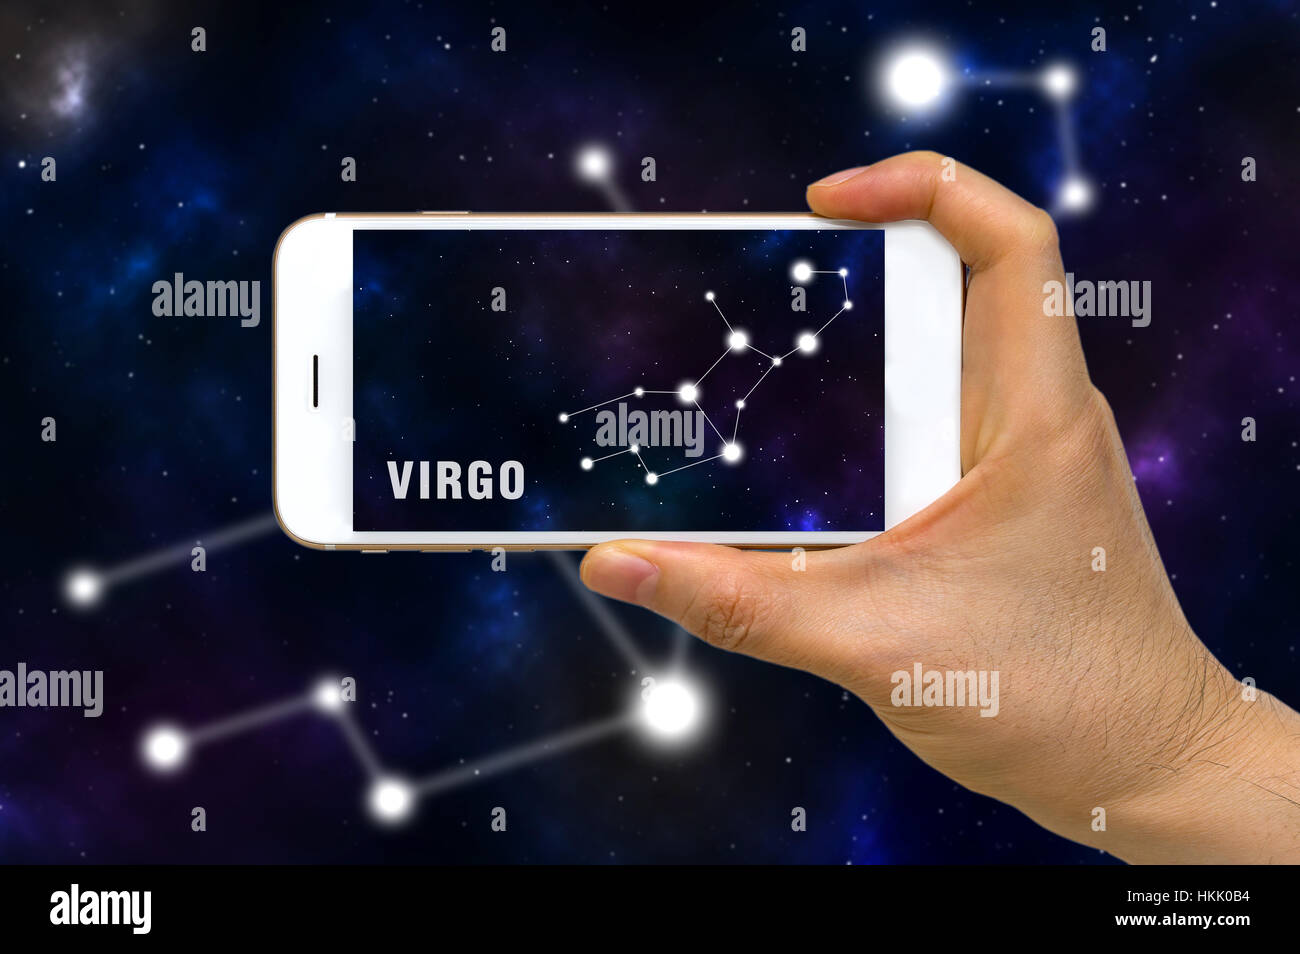 Concept of augmented reality, AR, of Virgo zodiac constellation app on smartphone. Stock Photo